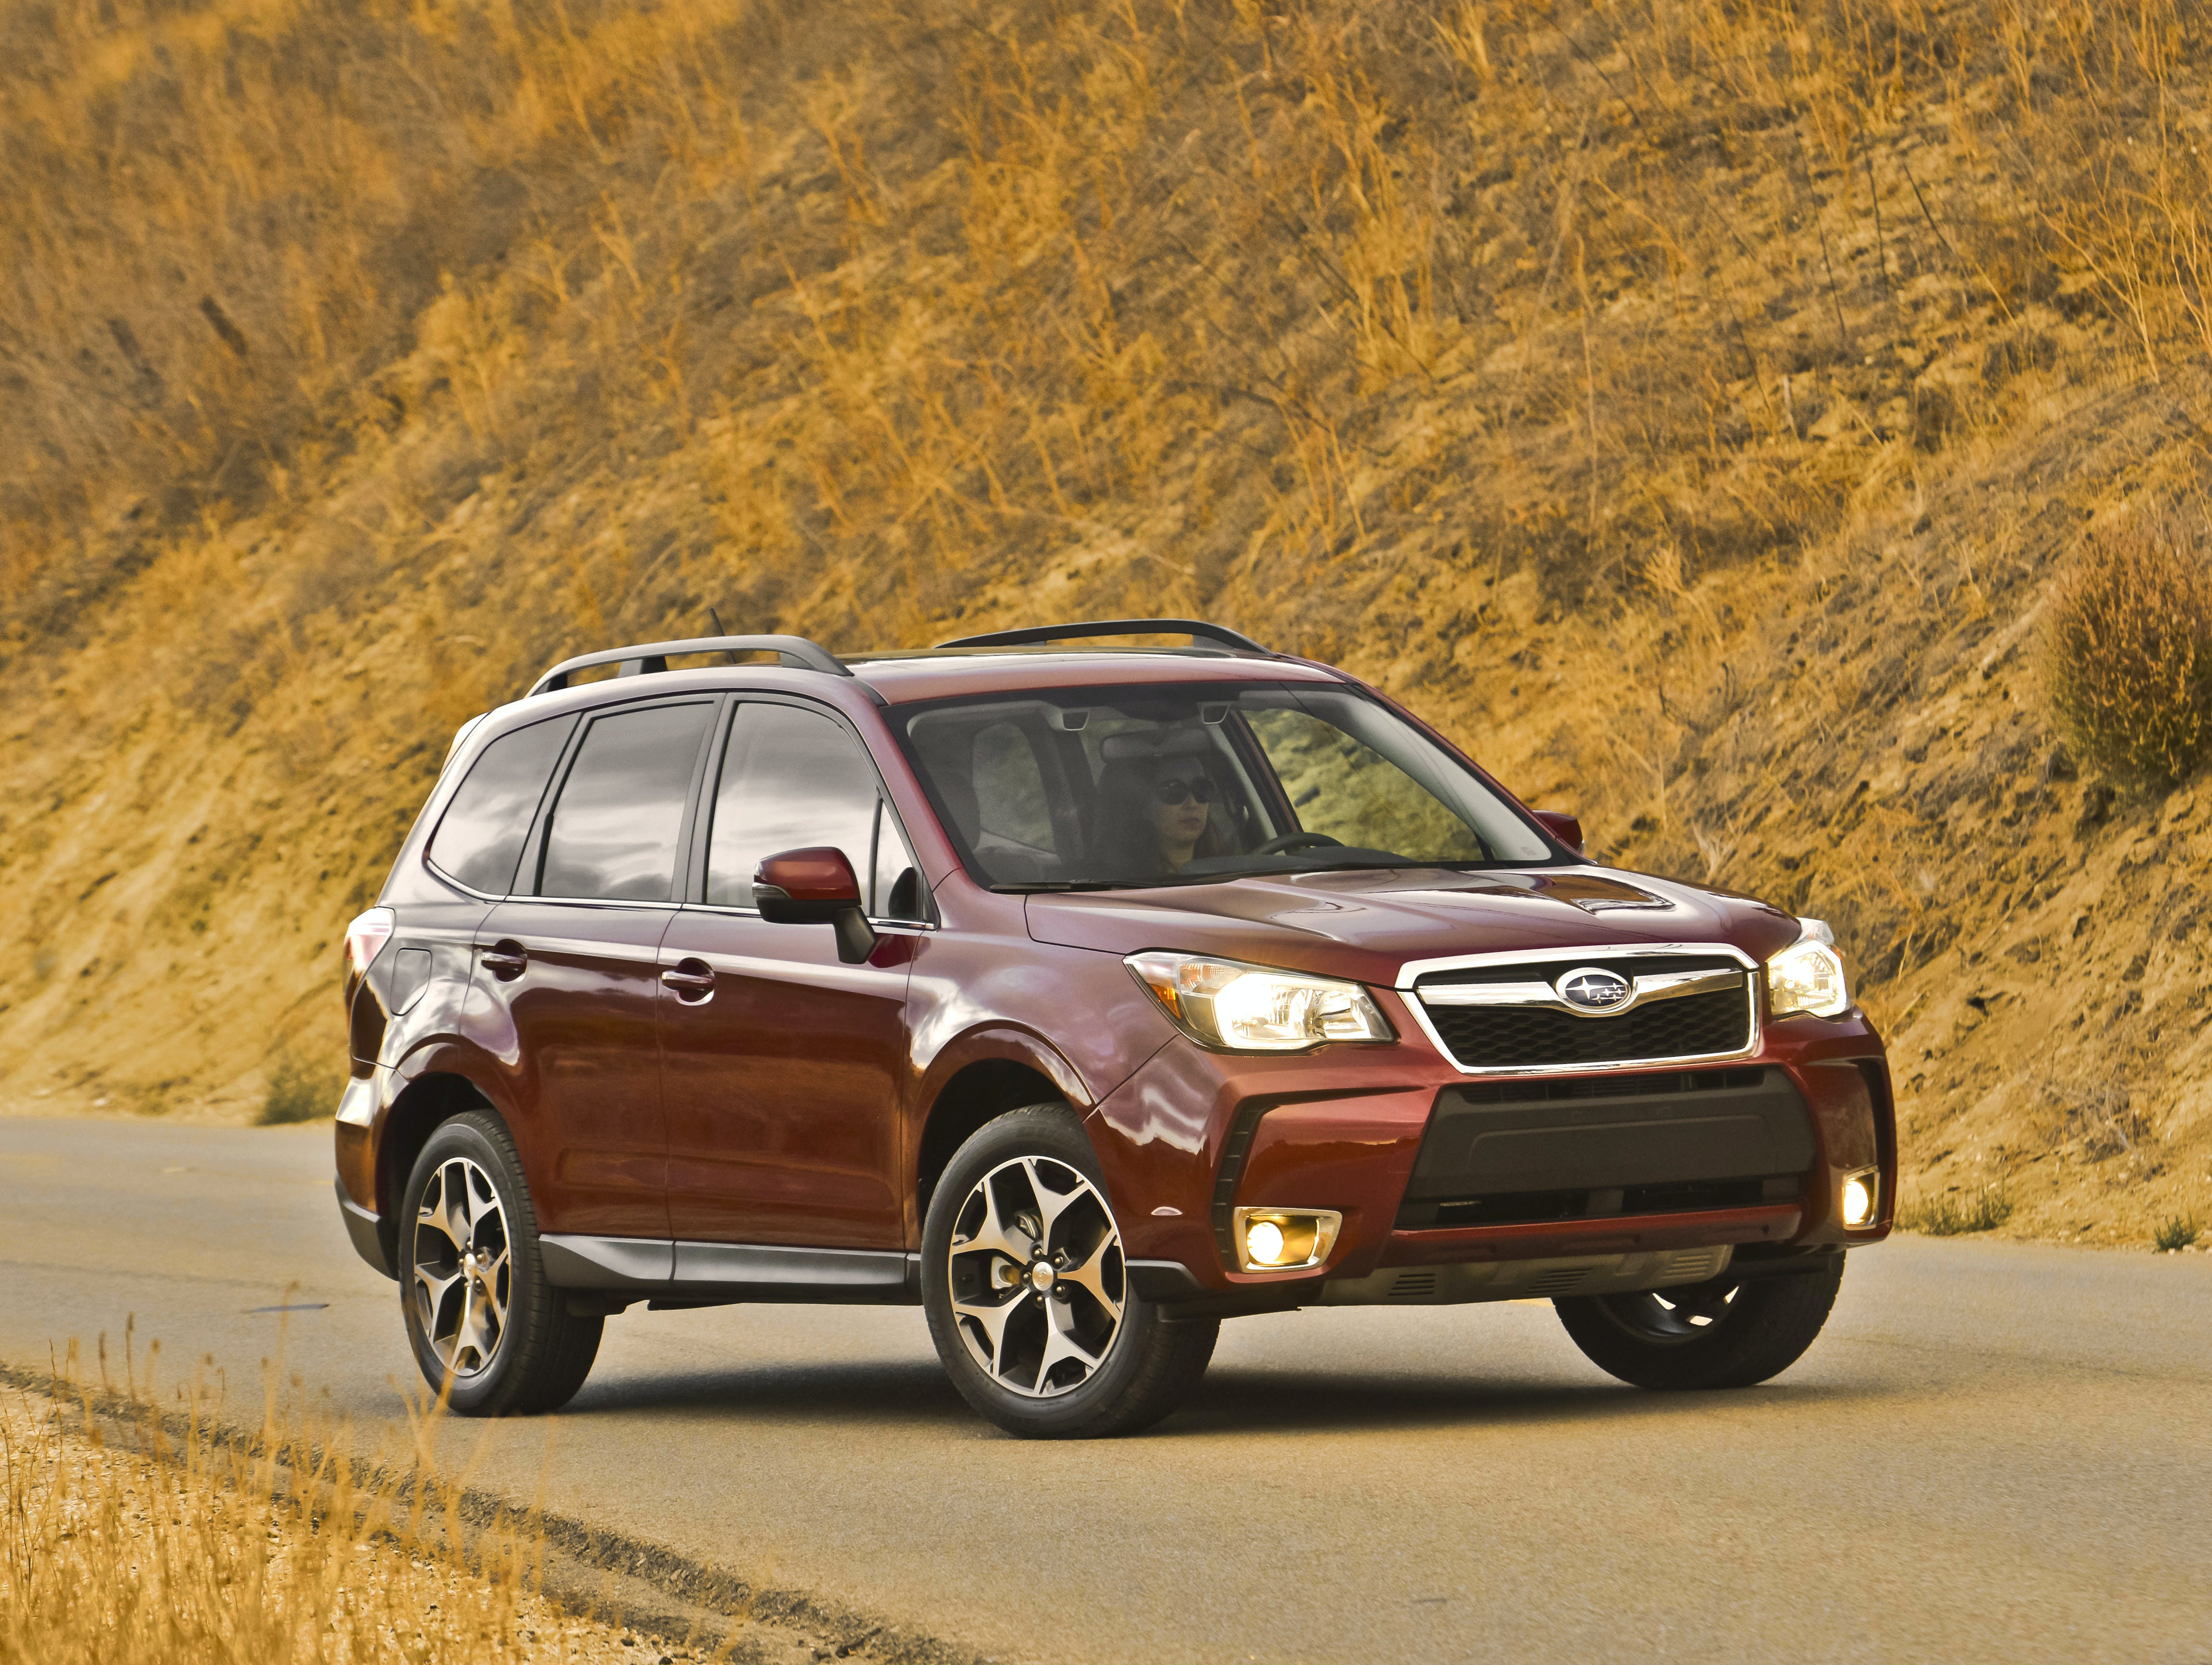 Subaru Forester or Outback: Which Is Better?